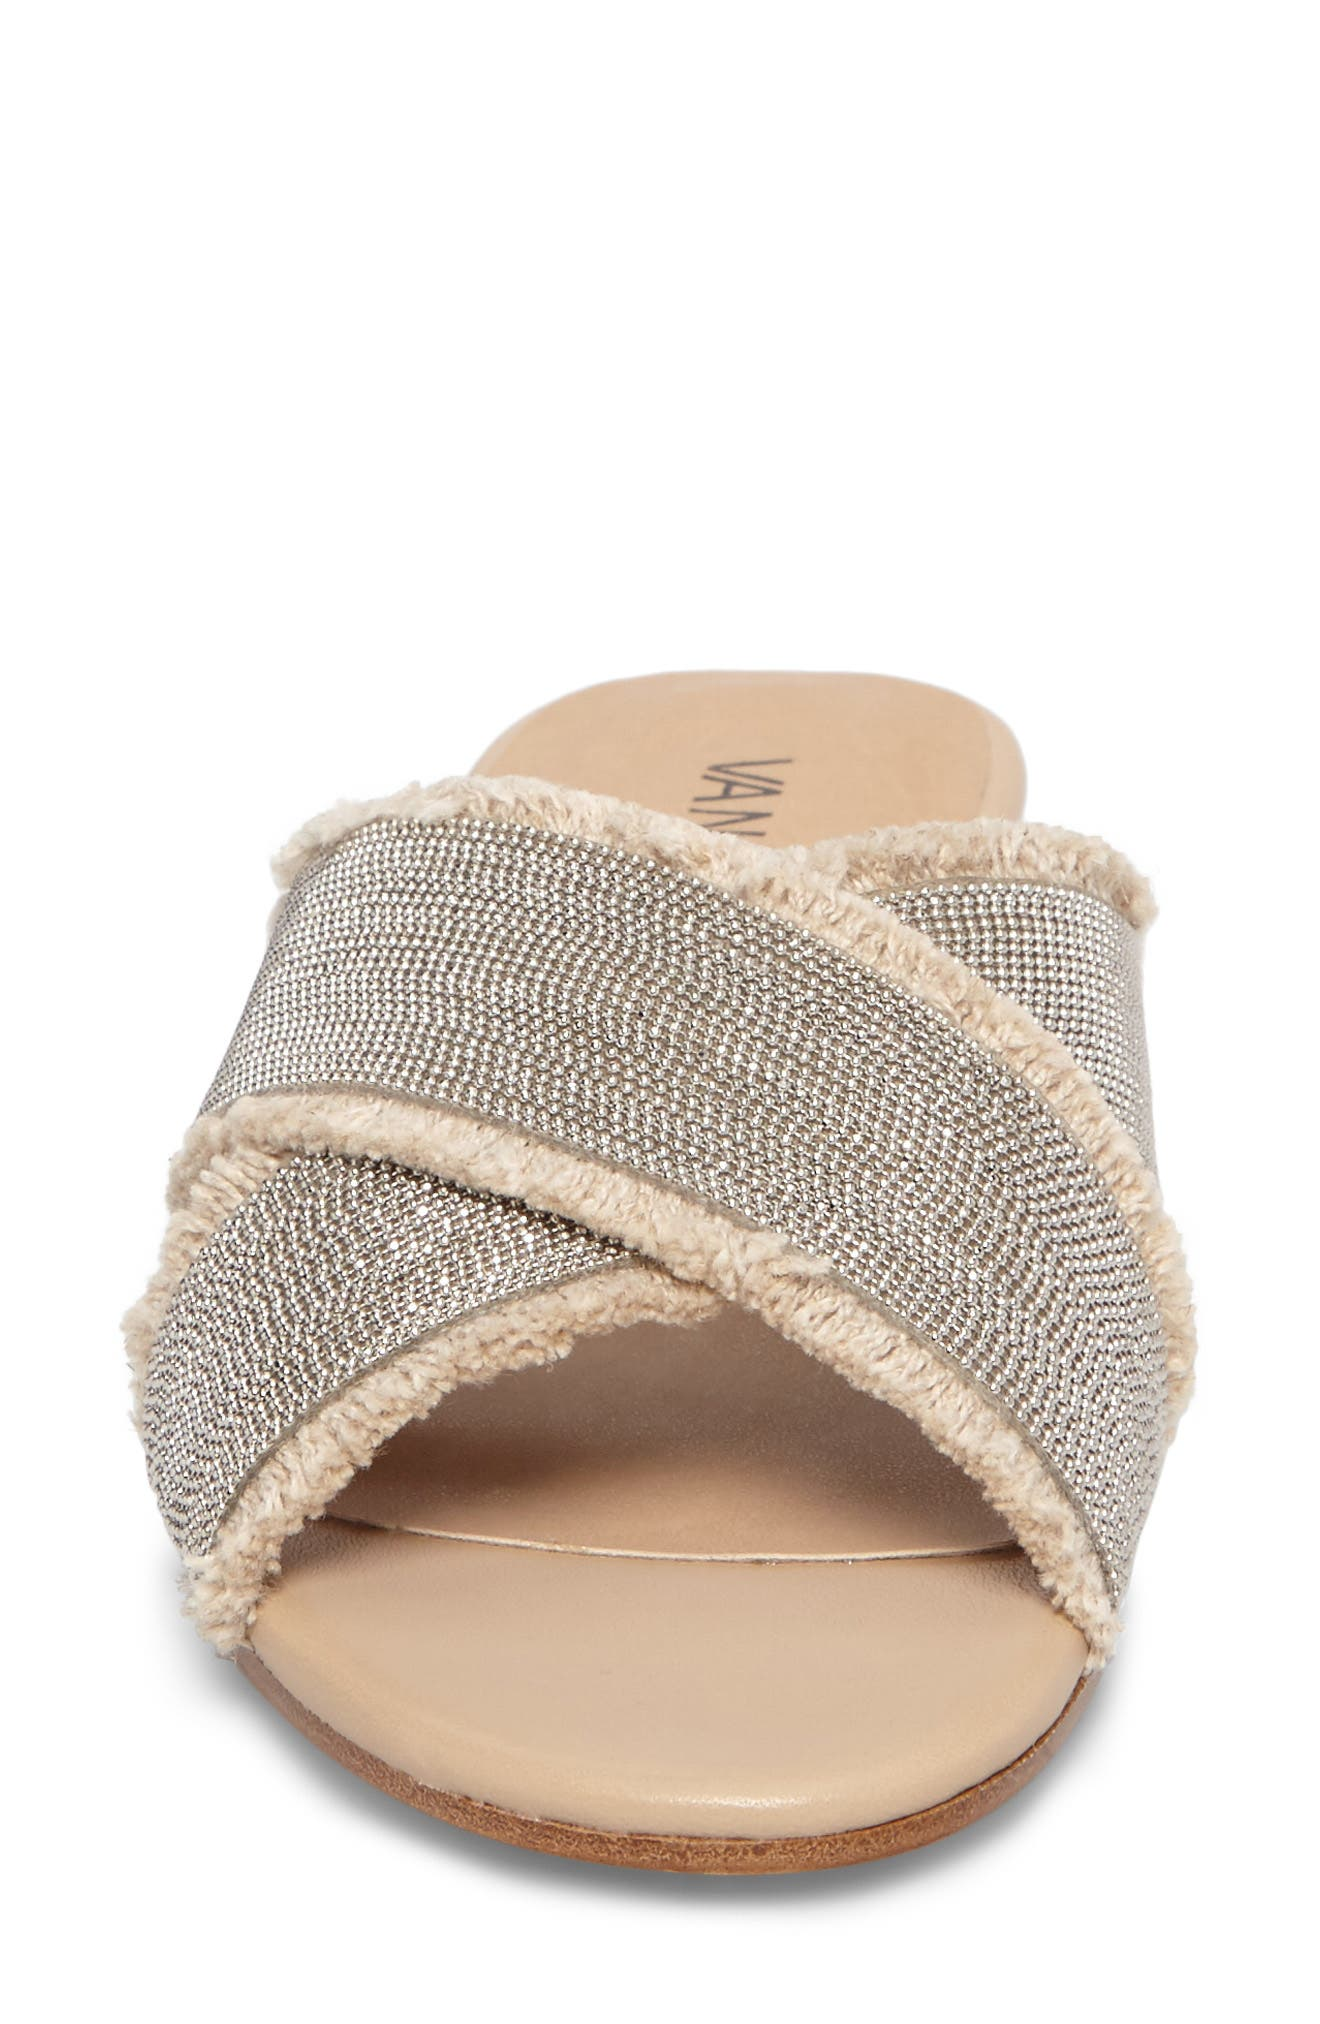 Baret Slide Sandal,                             Alternate thumbnail 4, color,